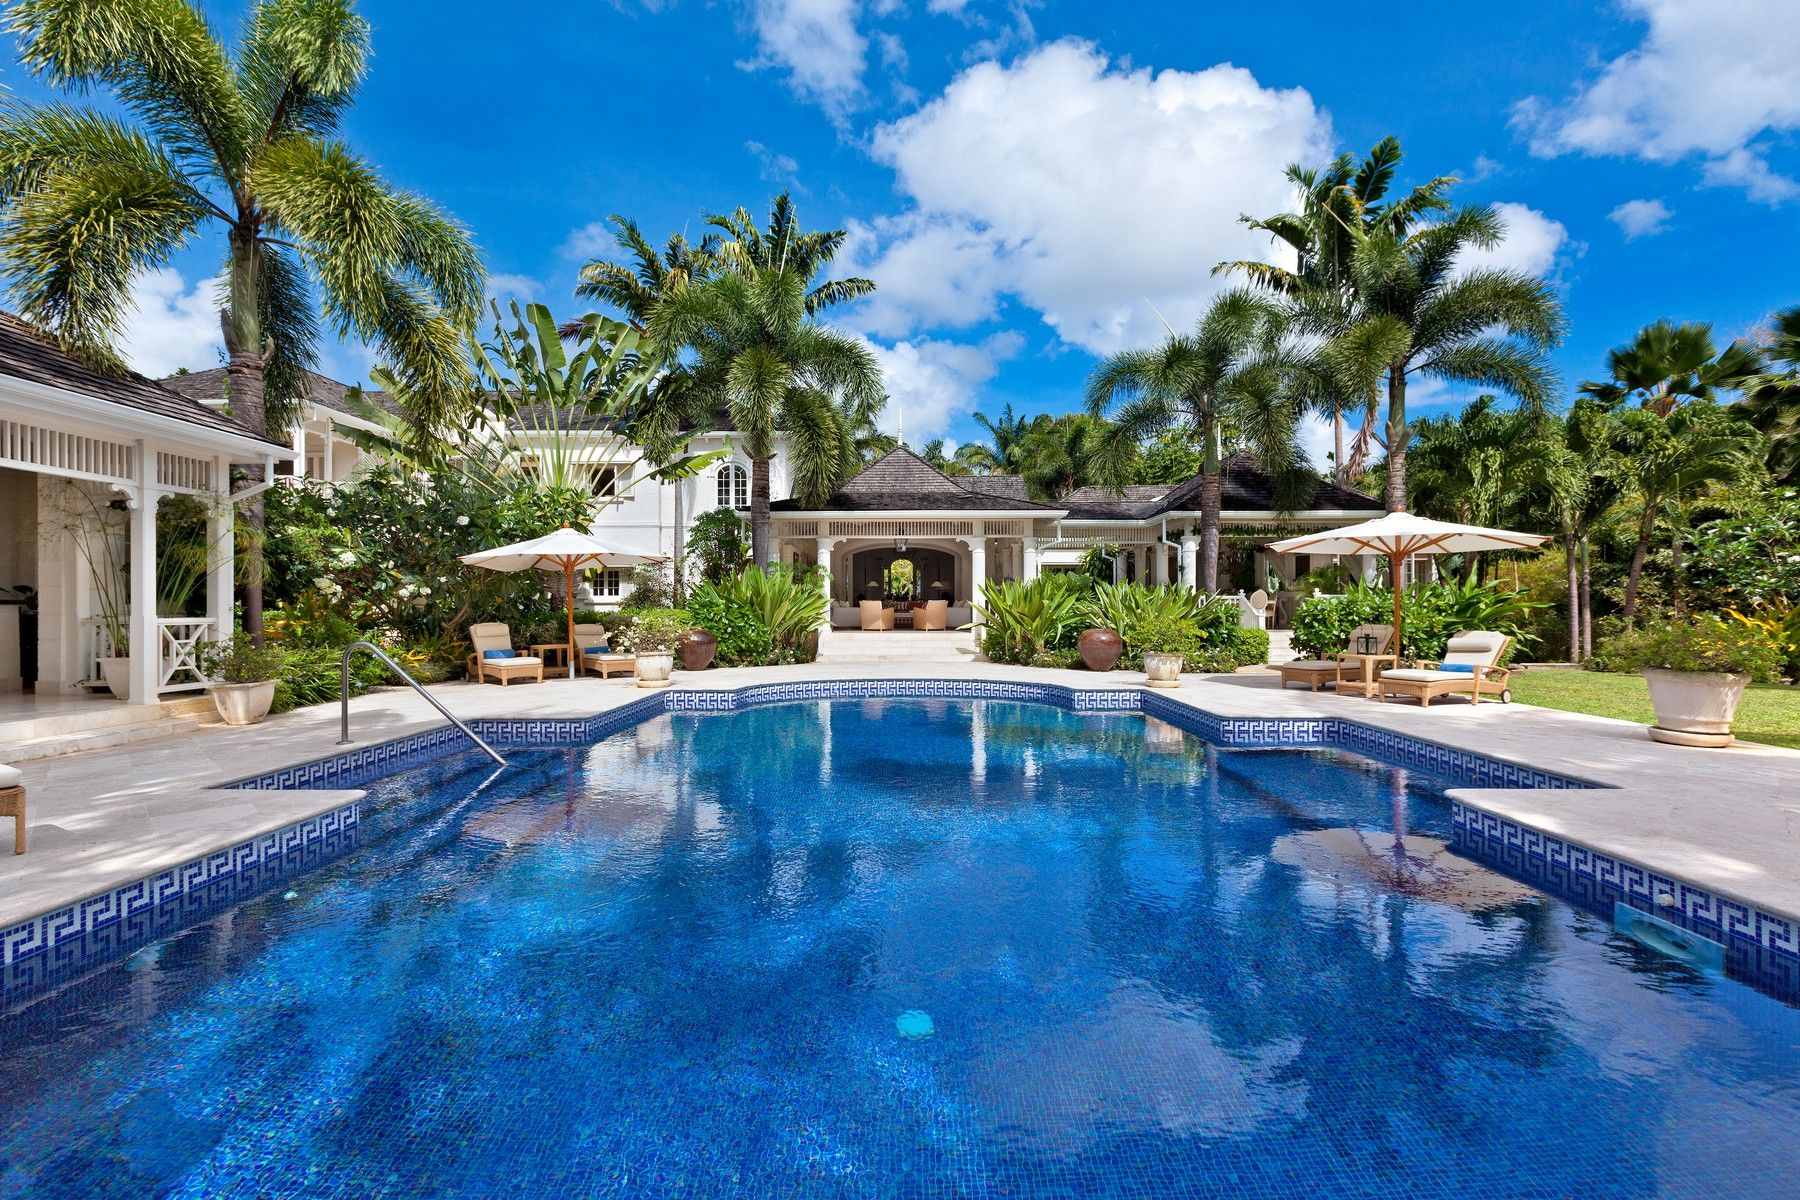 Extended winter stays in Barbados